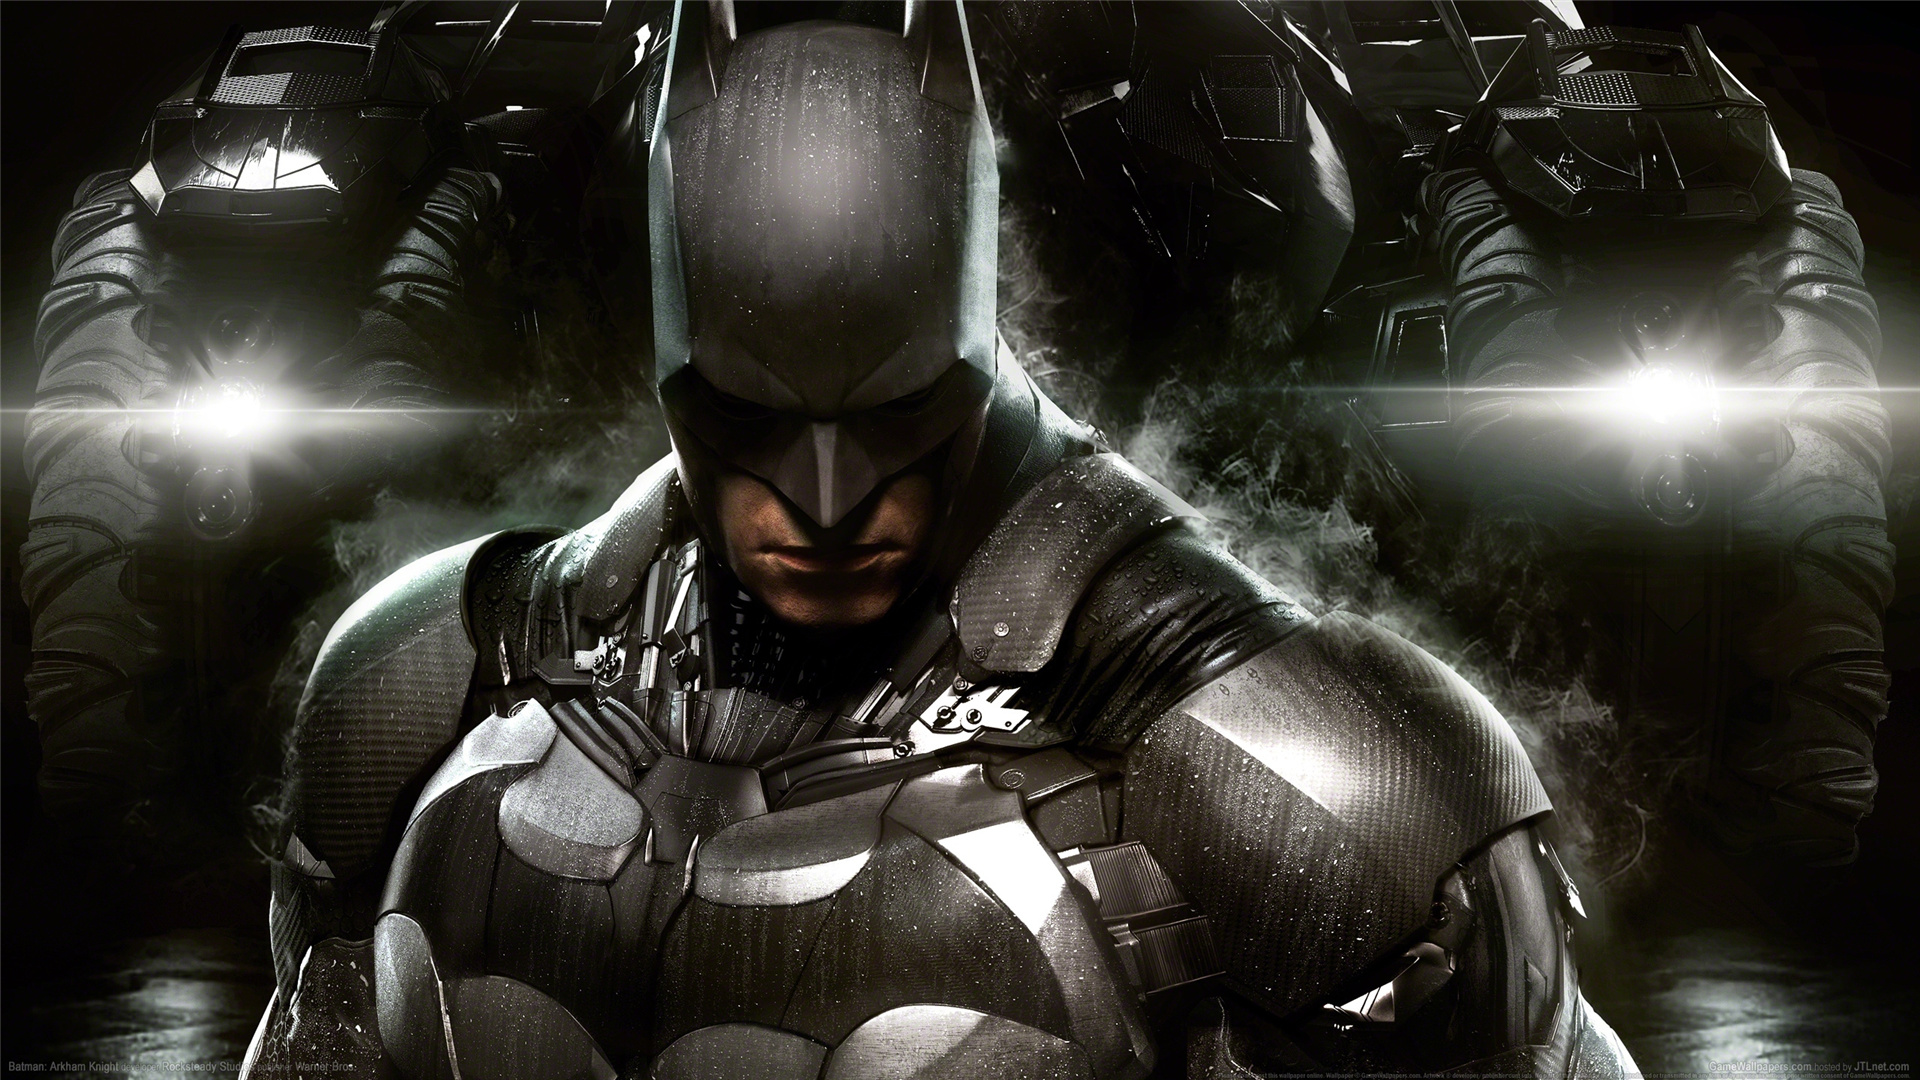 Gotham's Worst Unite Against Batman in This Arkham Knight Trailer